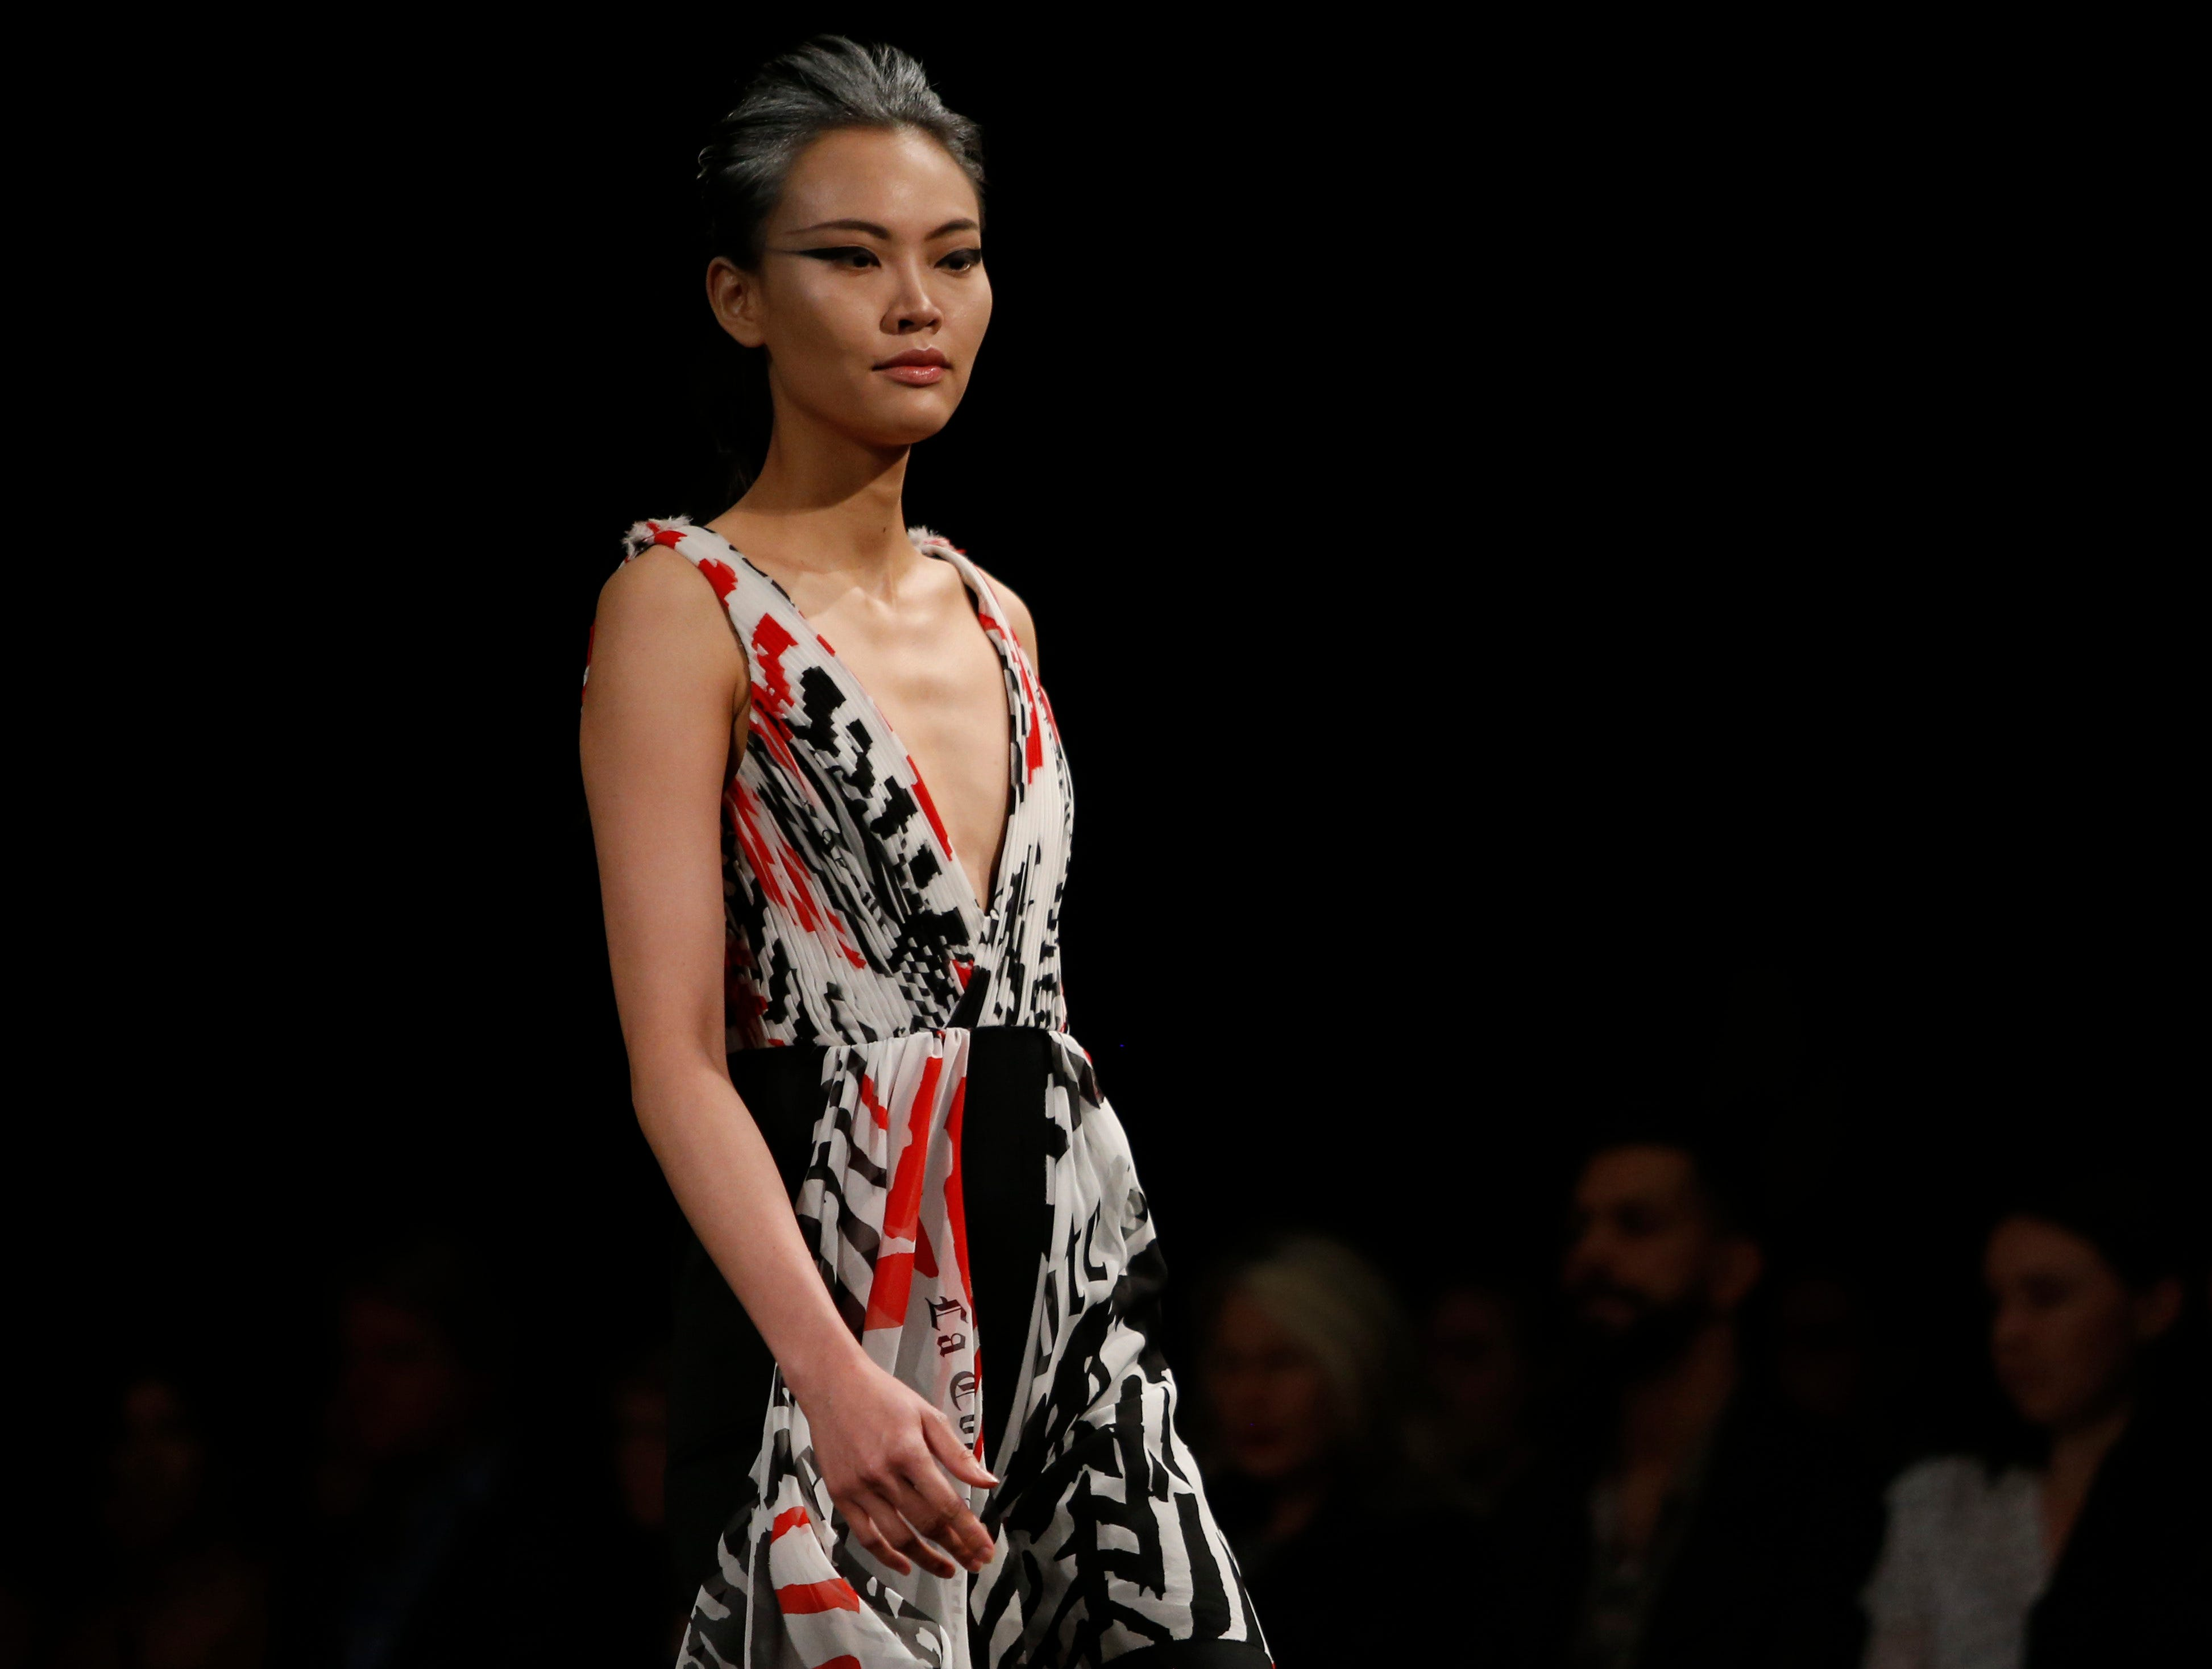 Designs from the collection of Marist College Fashion Department senior Raina Rosario during the 33rd Marist College Silver Needle Runway Show on May 10, 2019.